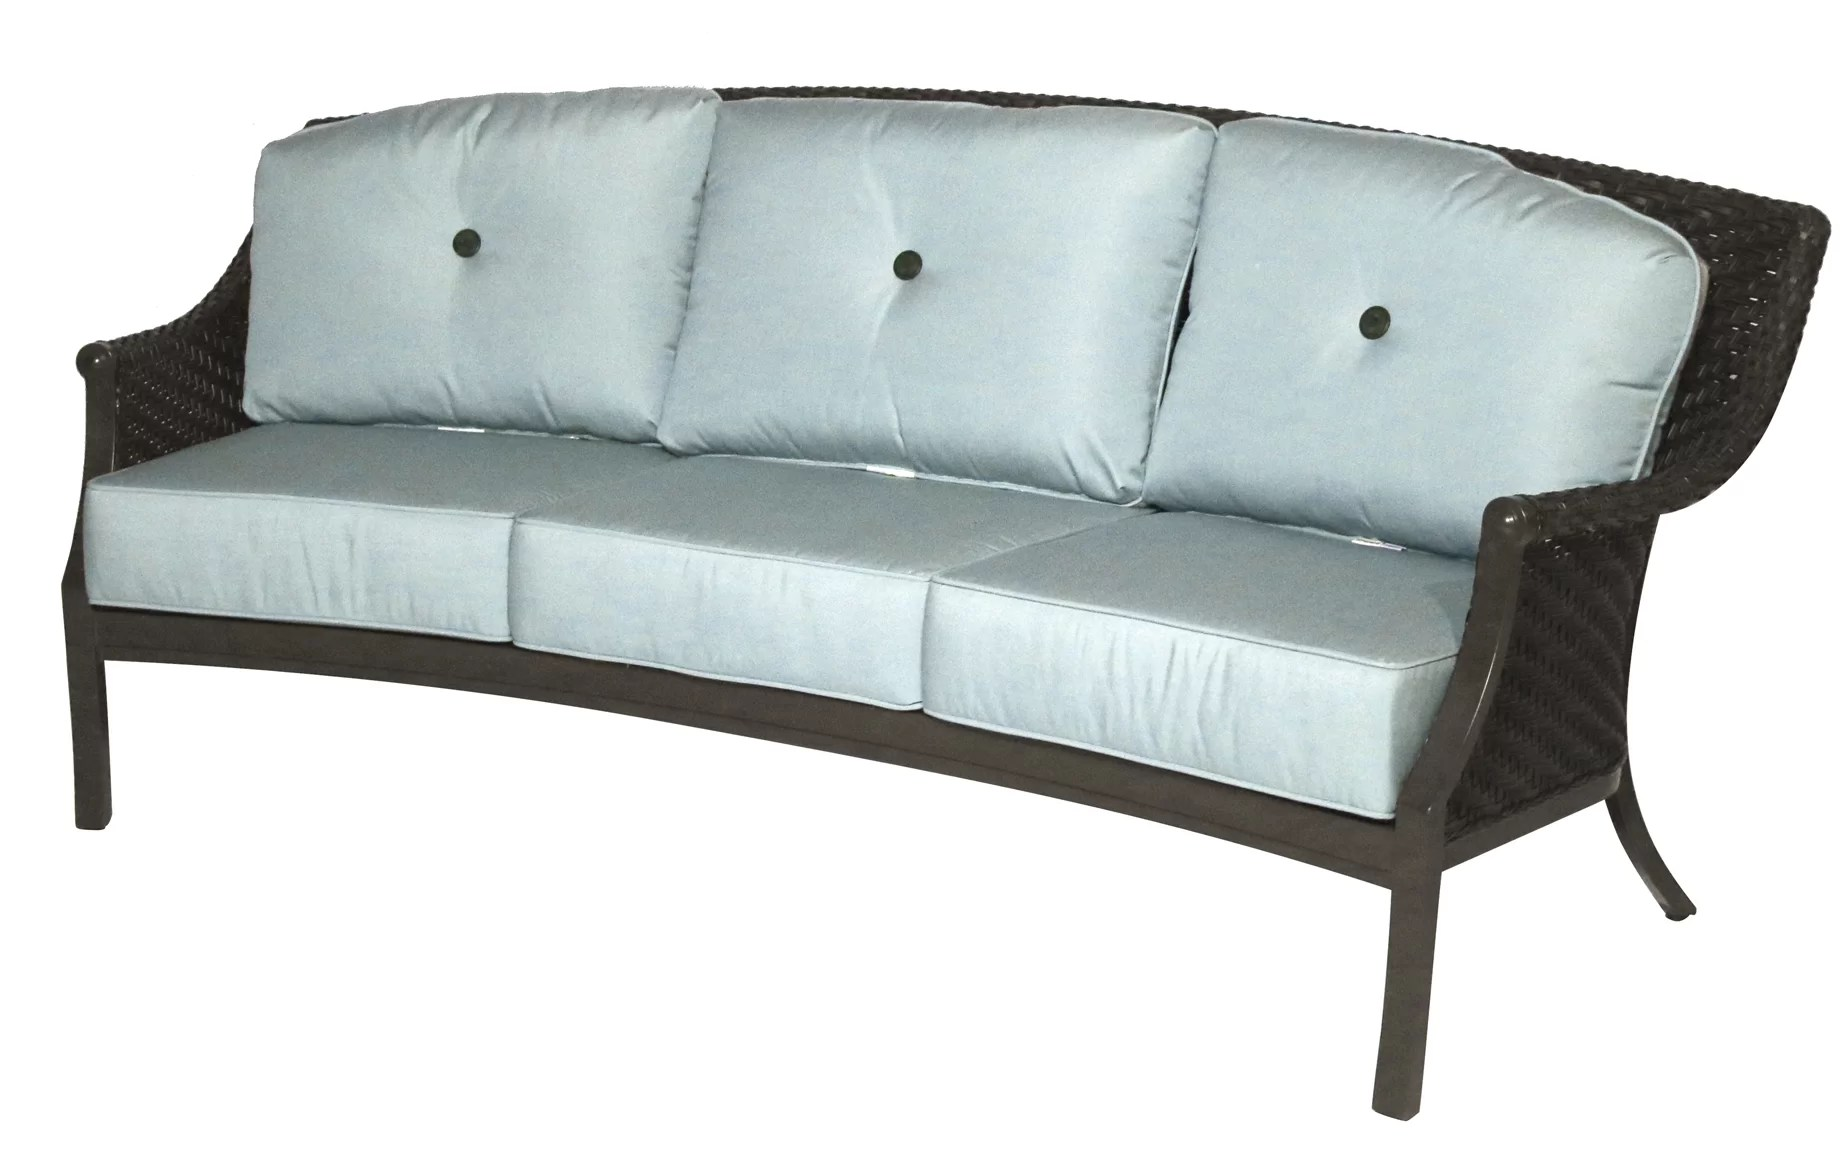 Sofa Cushions That Don't Go Flat Kanzler Patio Sofa With Cushions